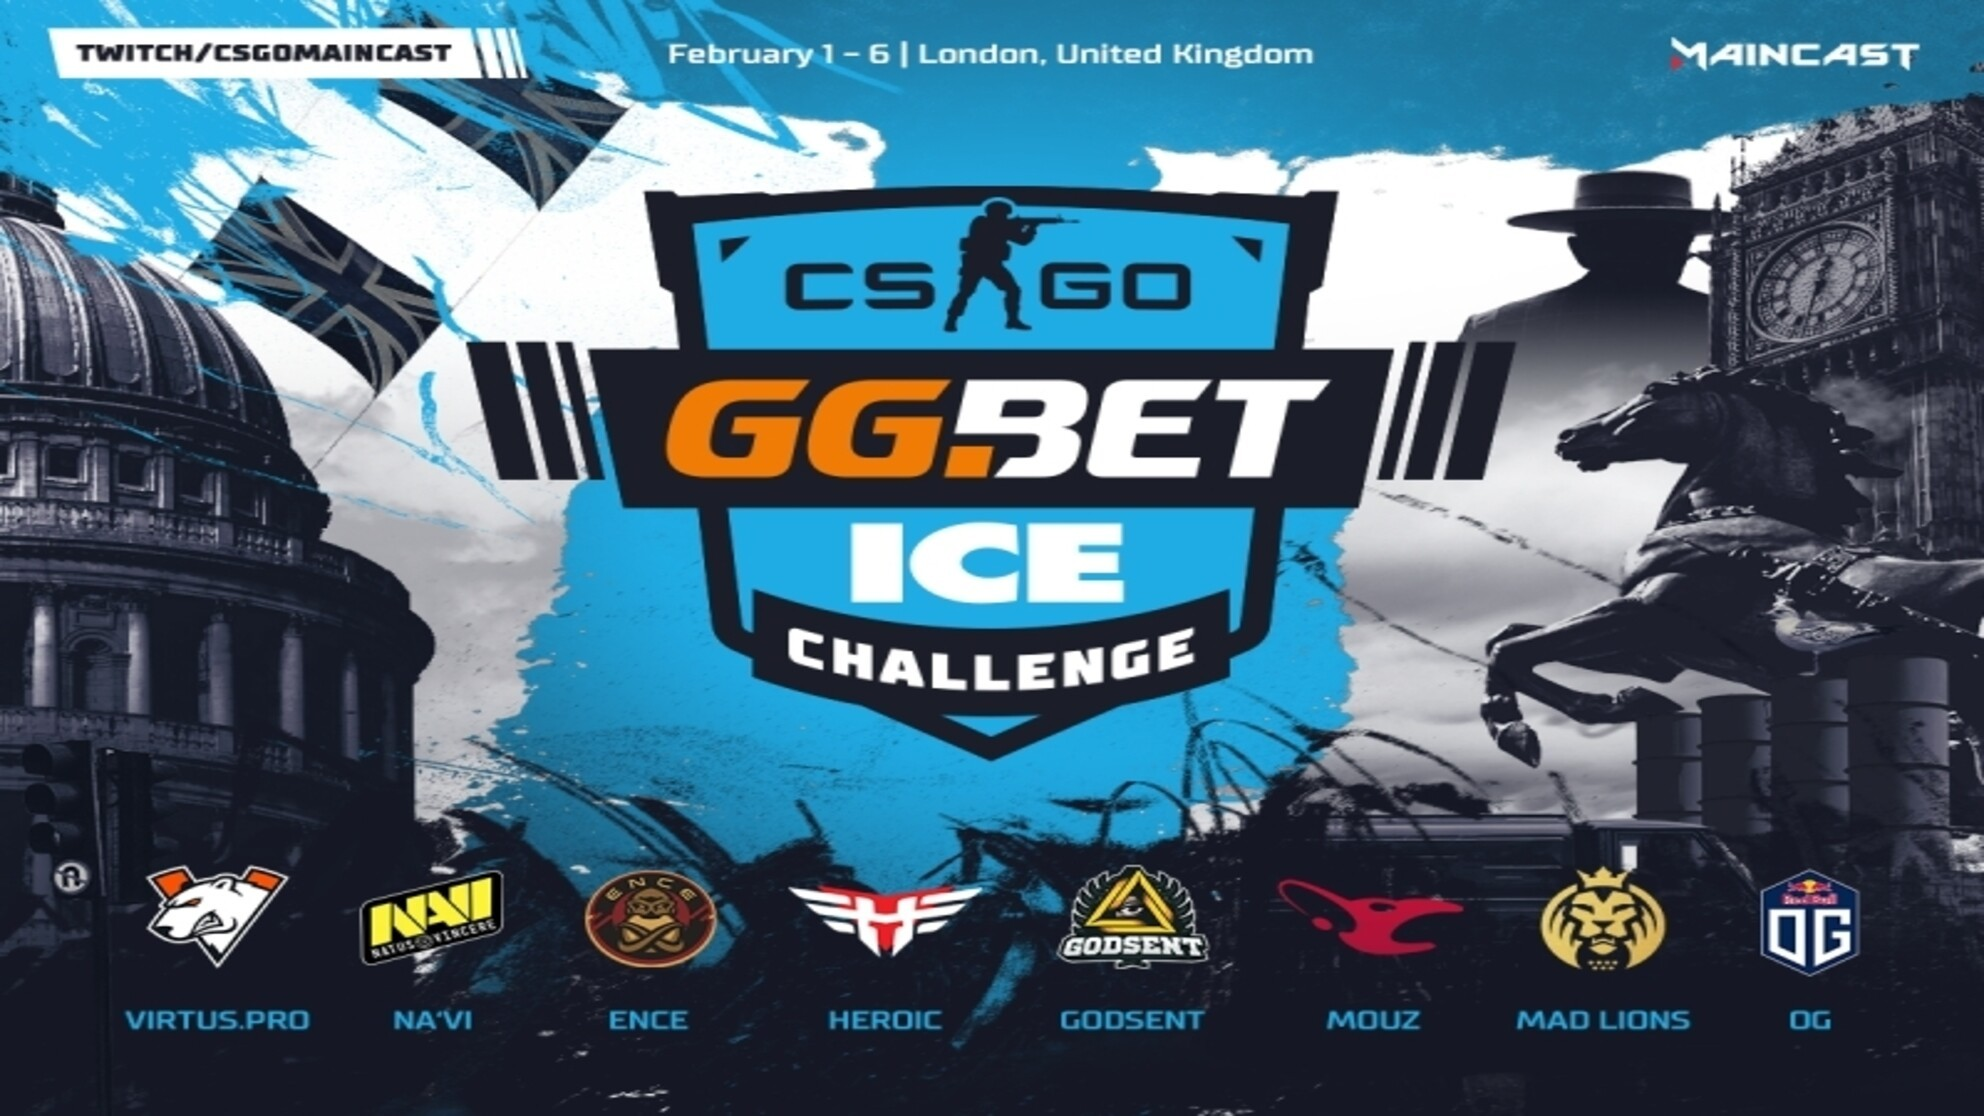 ICE Challenge groups, match-ups, talent revealed